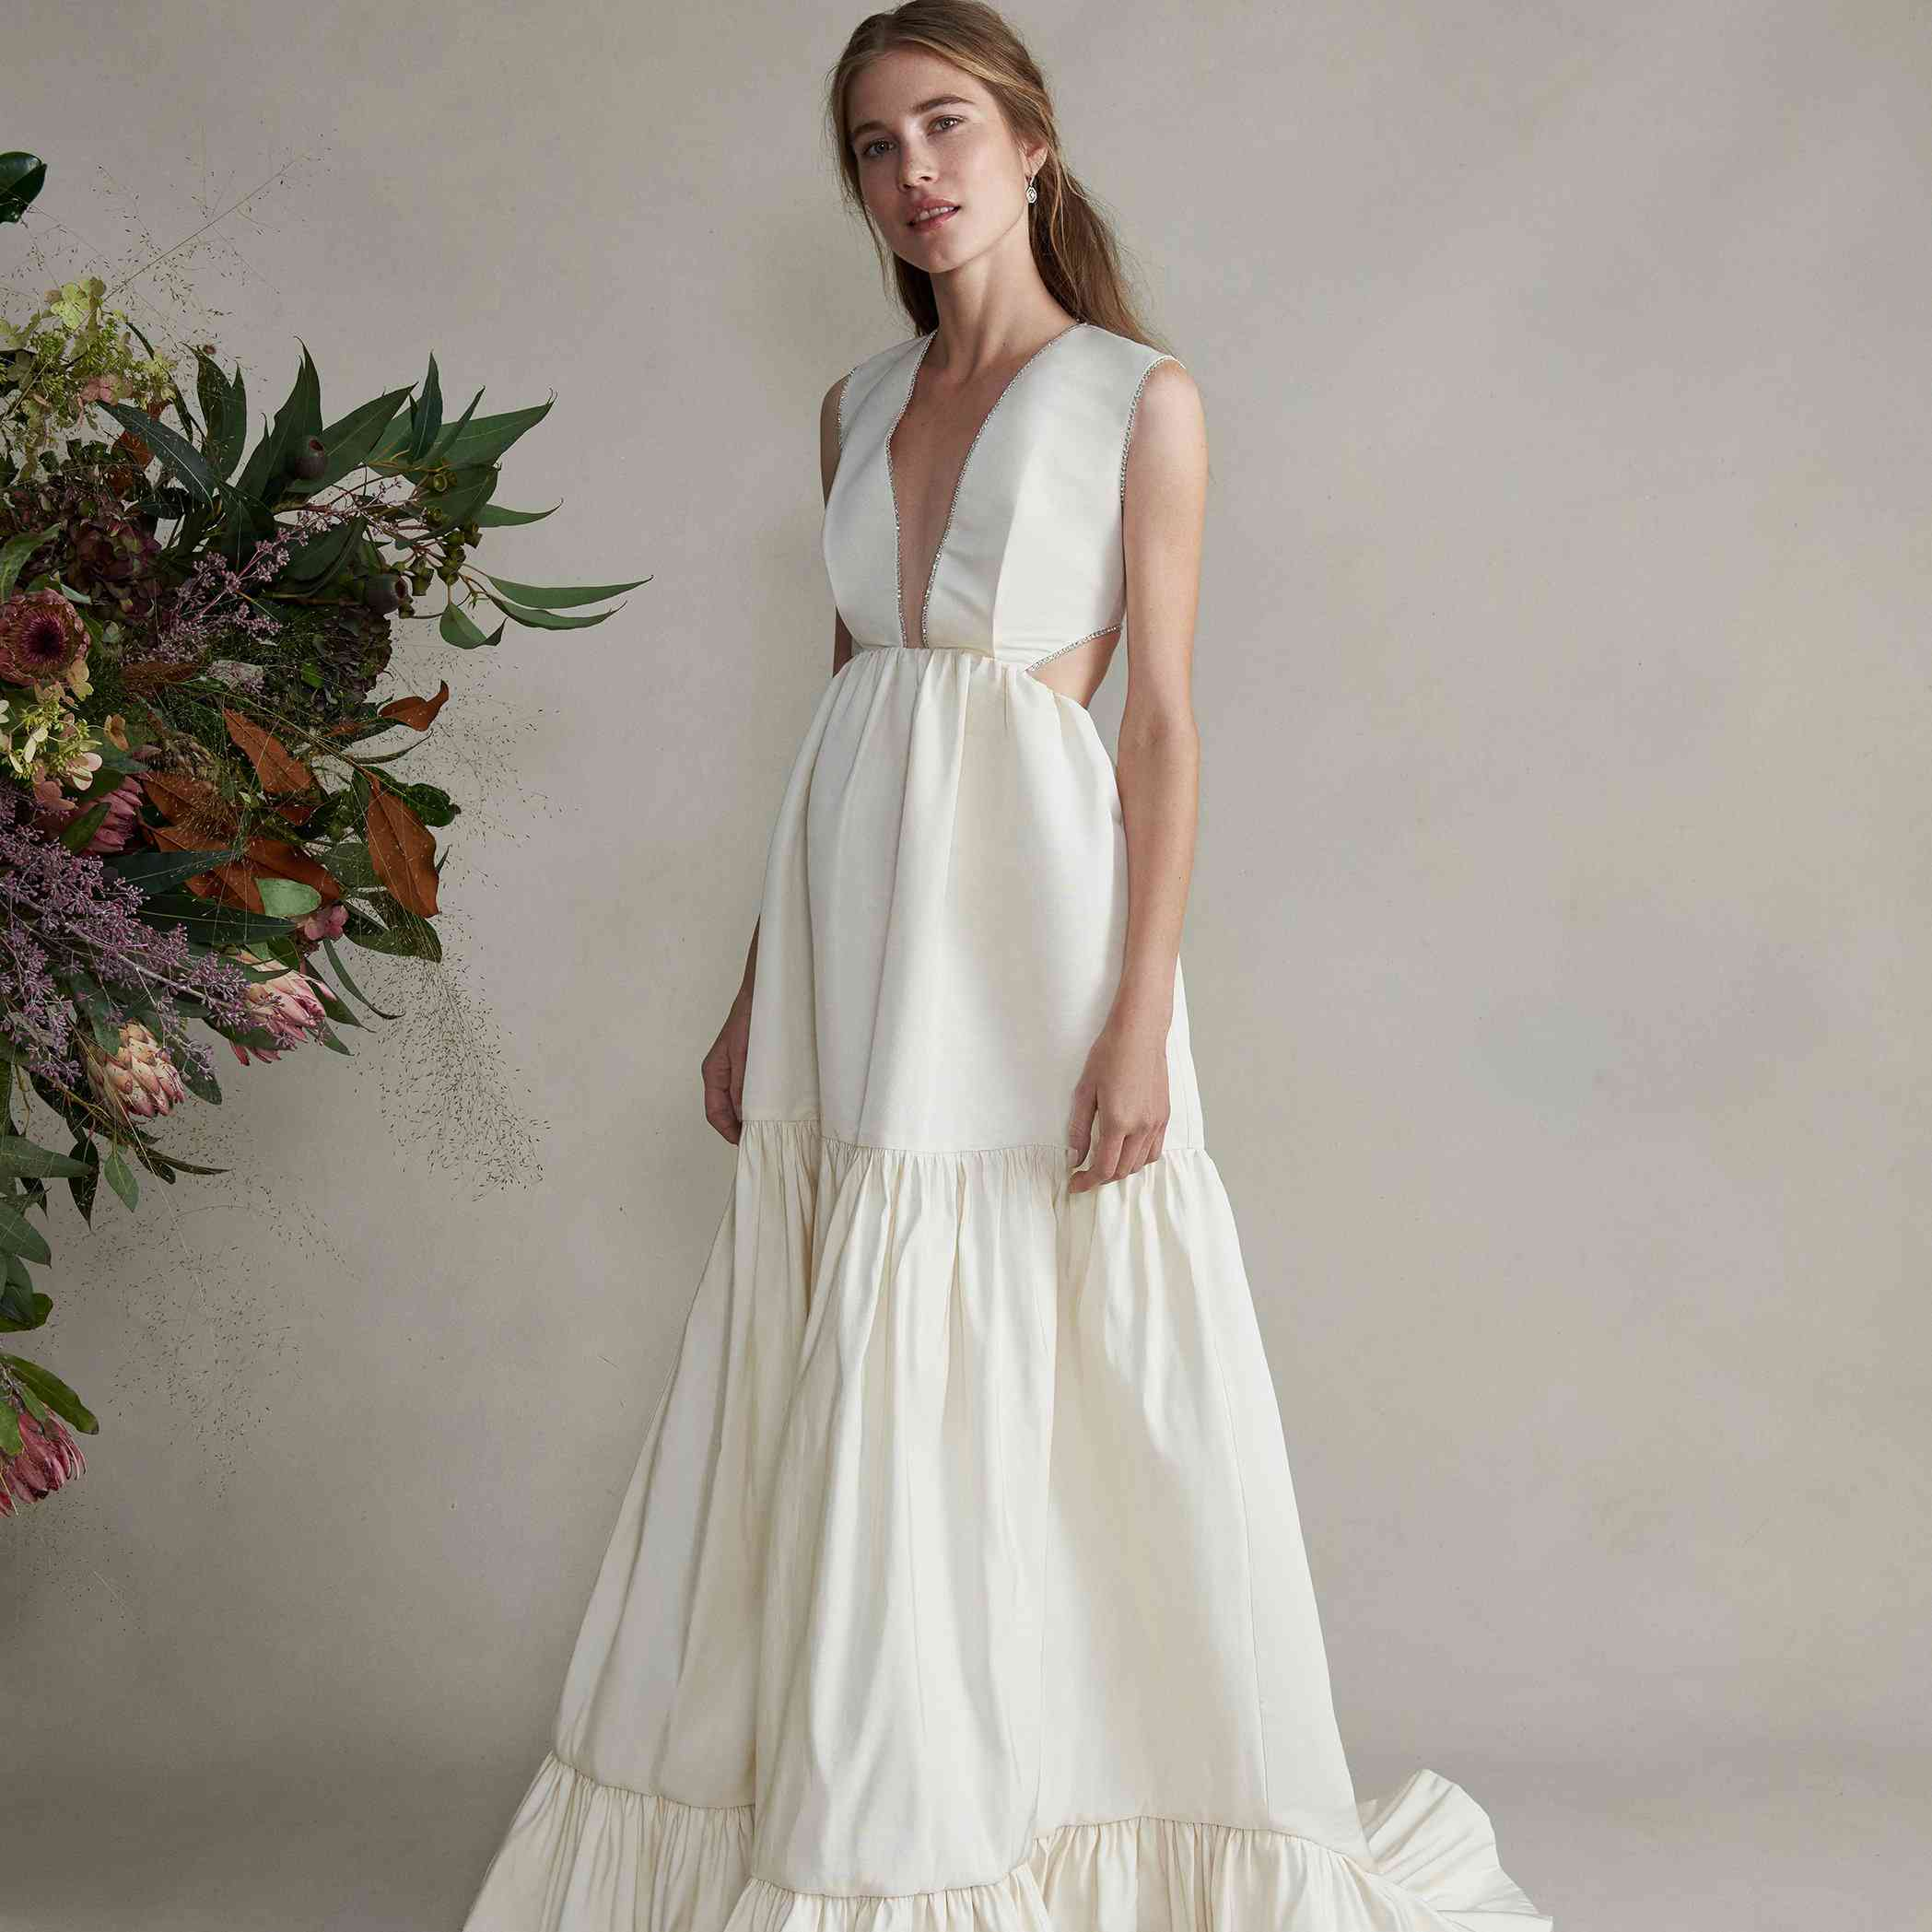 35 Beach Wedding Dresses Perfect For A Seaside Ceremony,Short Casual Plus Size Wedding Dress